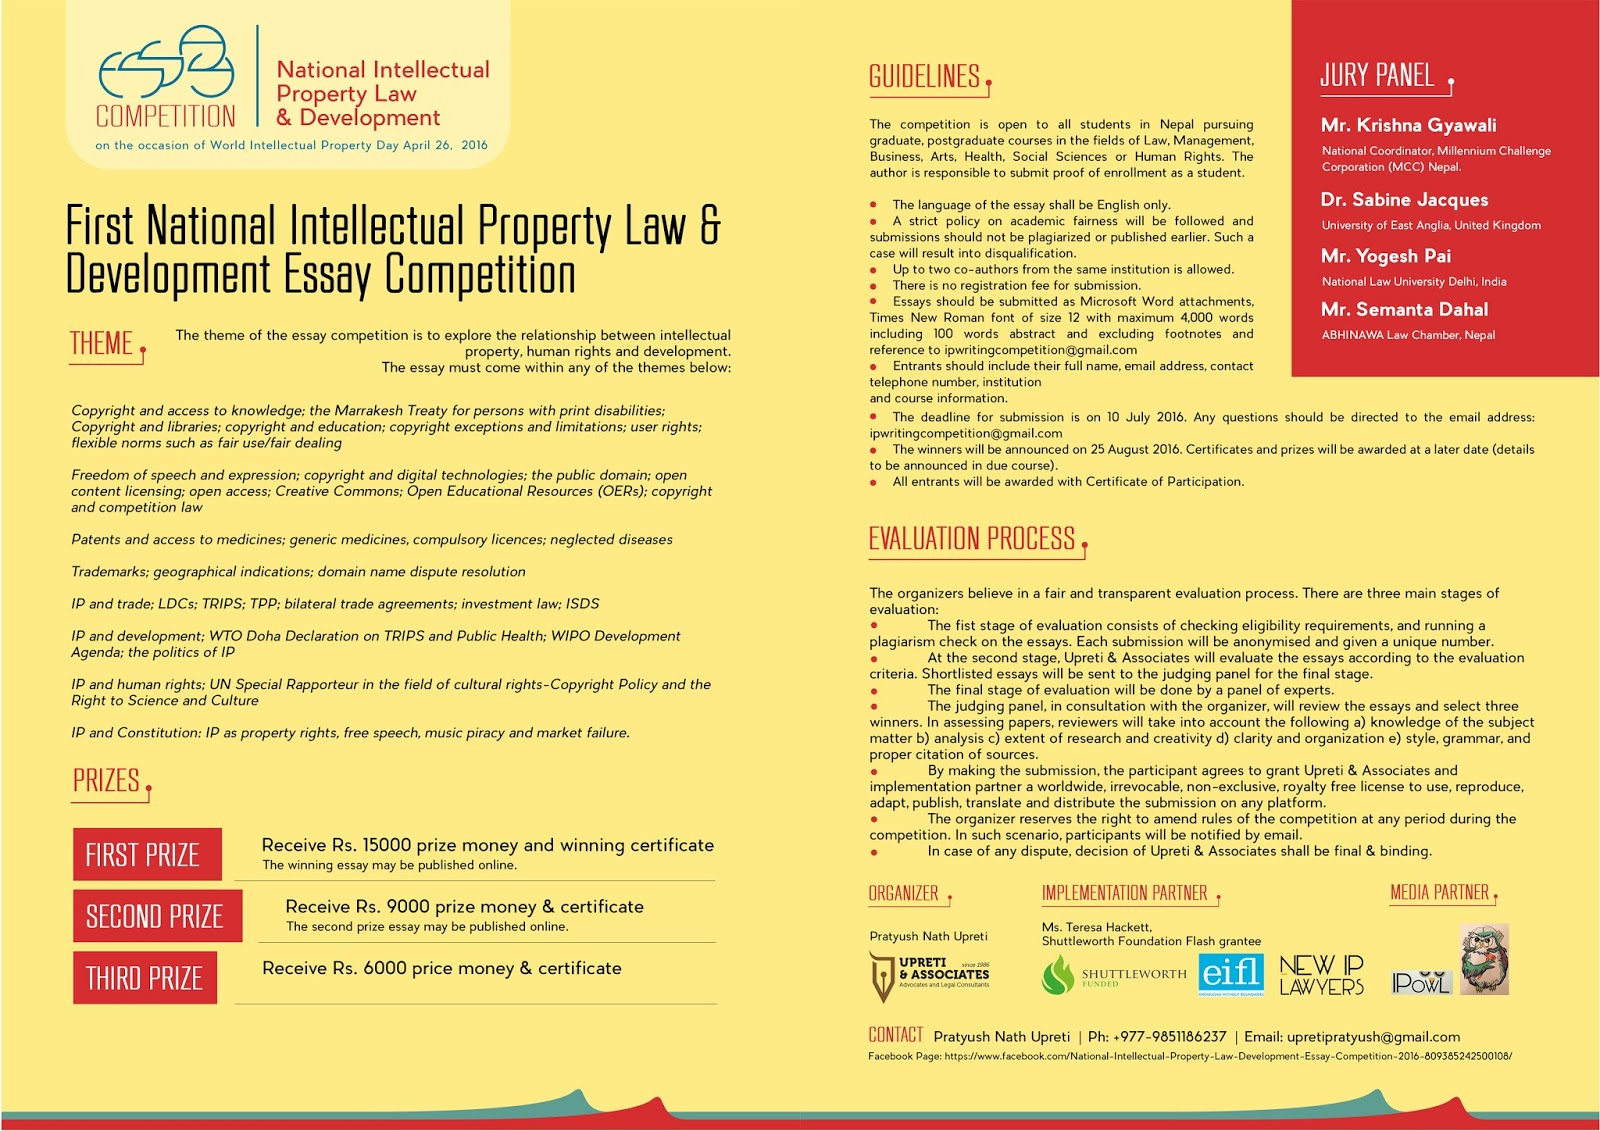 first national intellectual property law development essay art management business social sciences health and human rights thank you implementation partners and jury members for your generous support